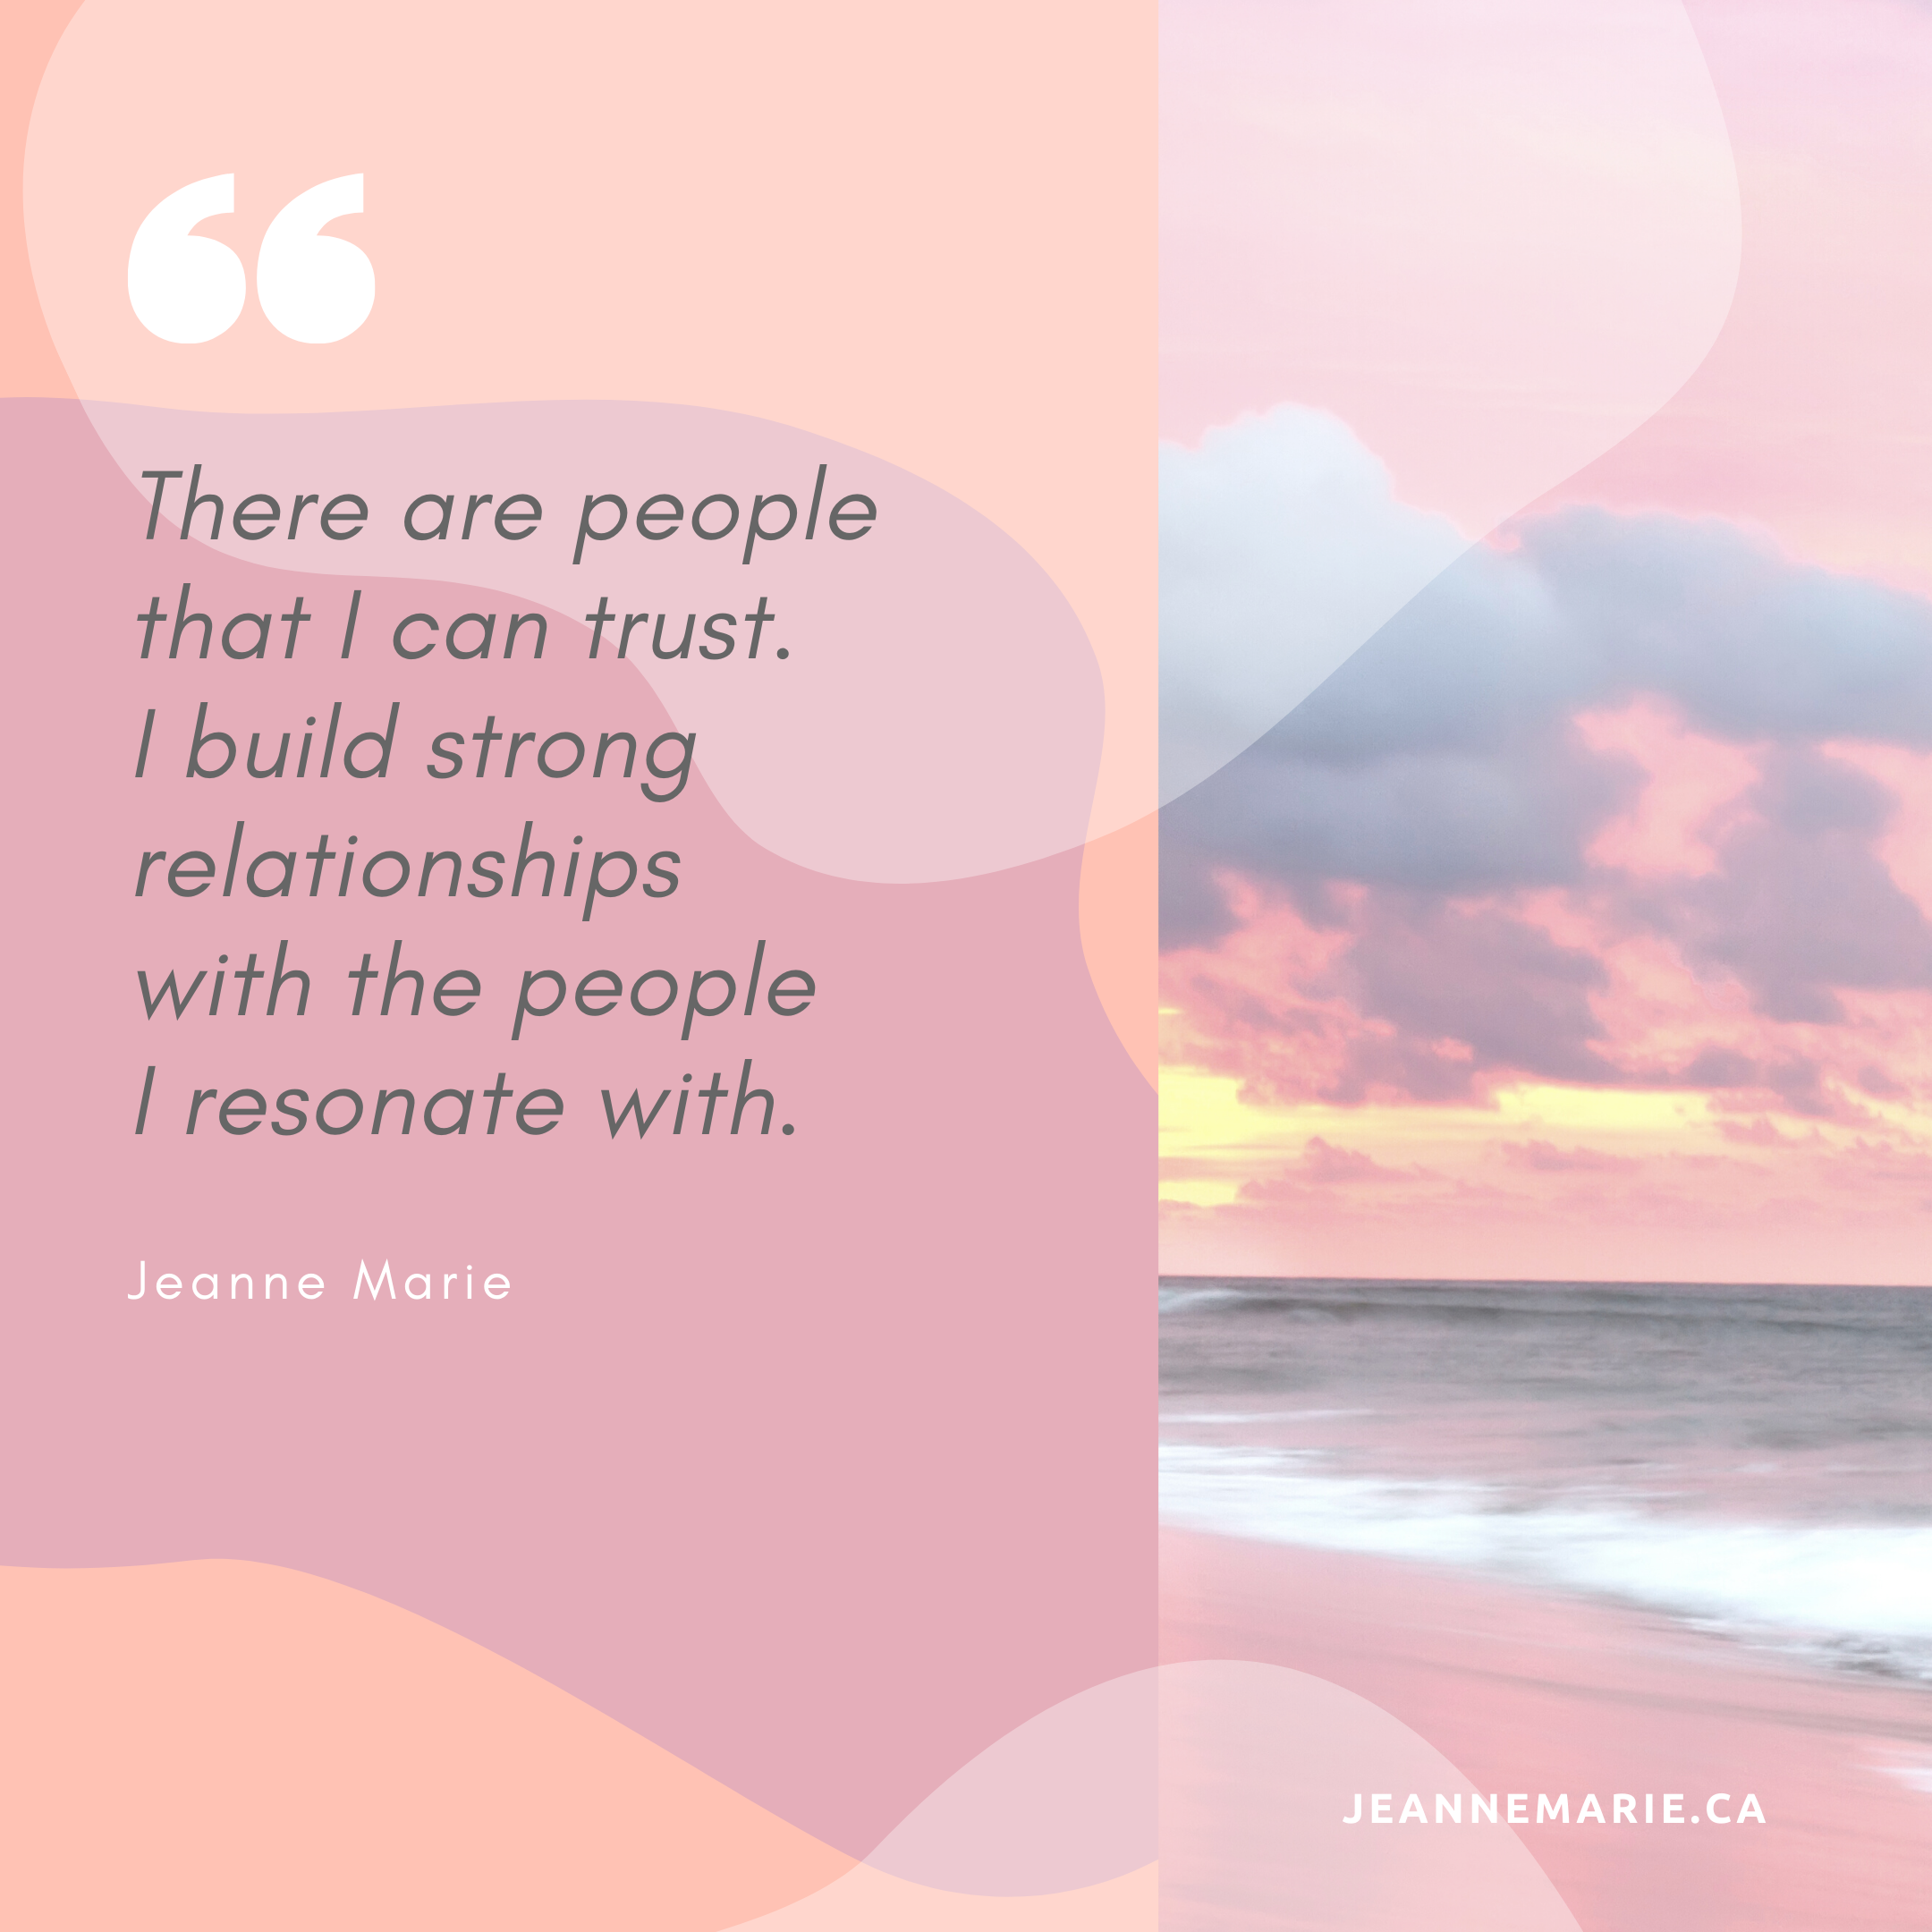 There are people that I can trust